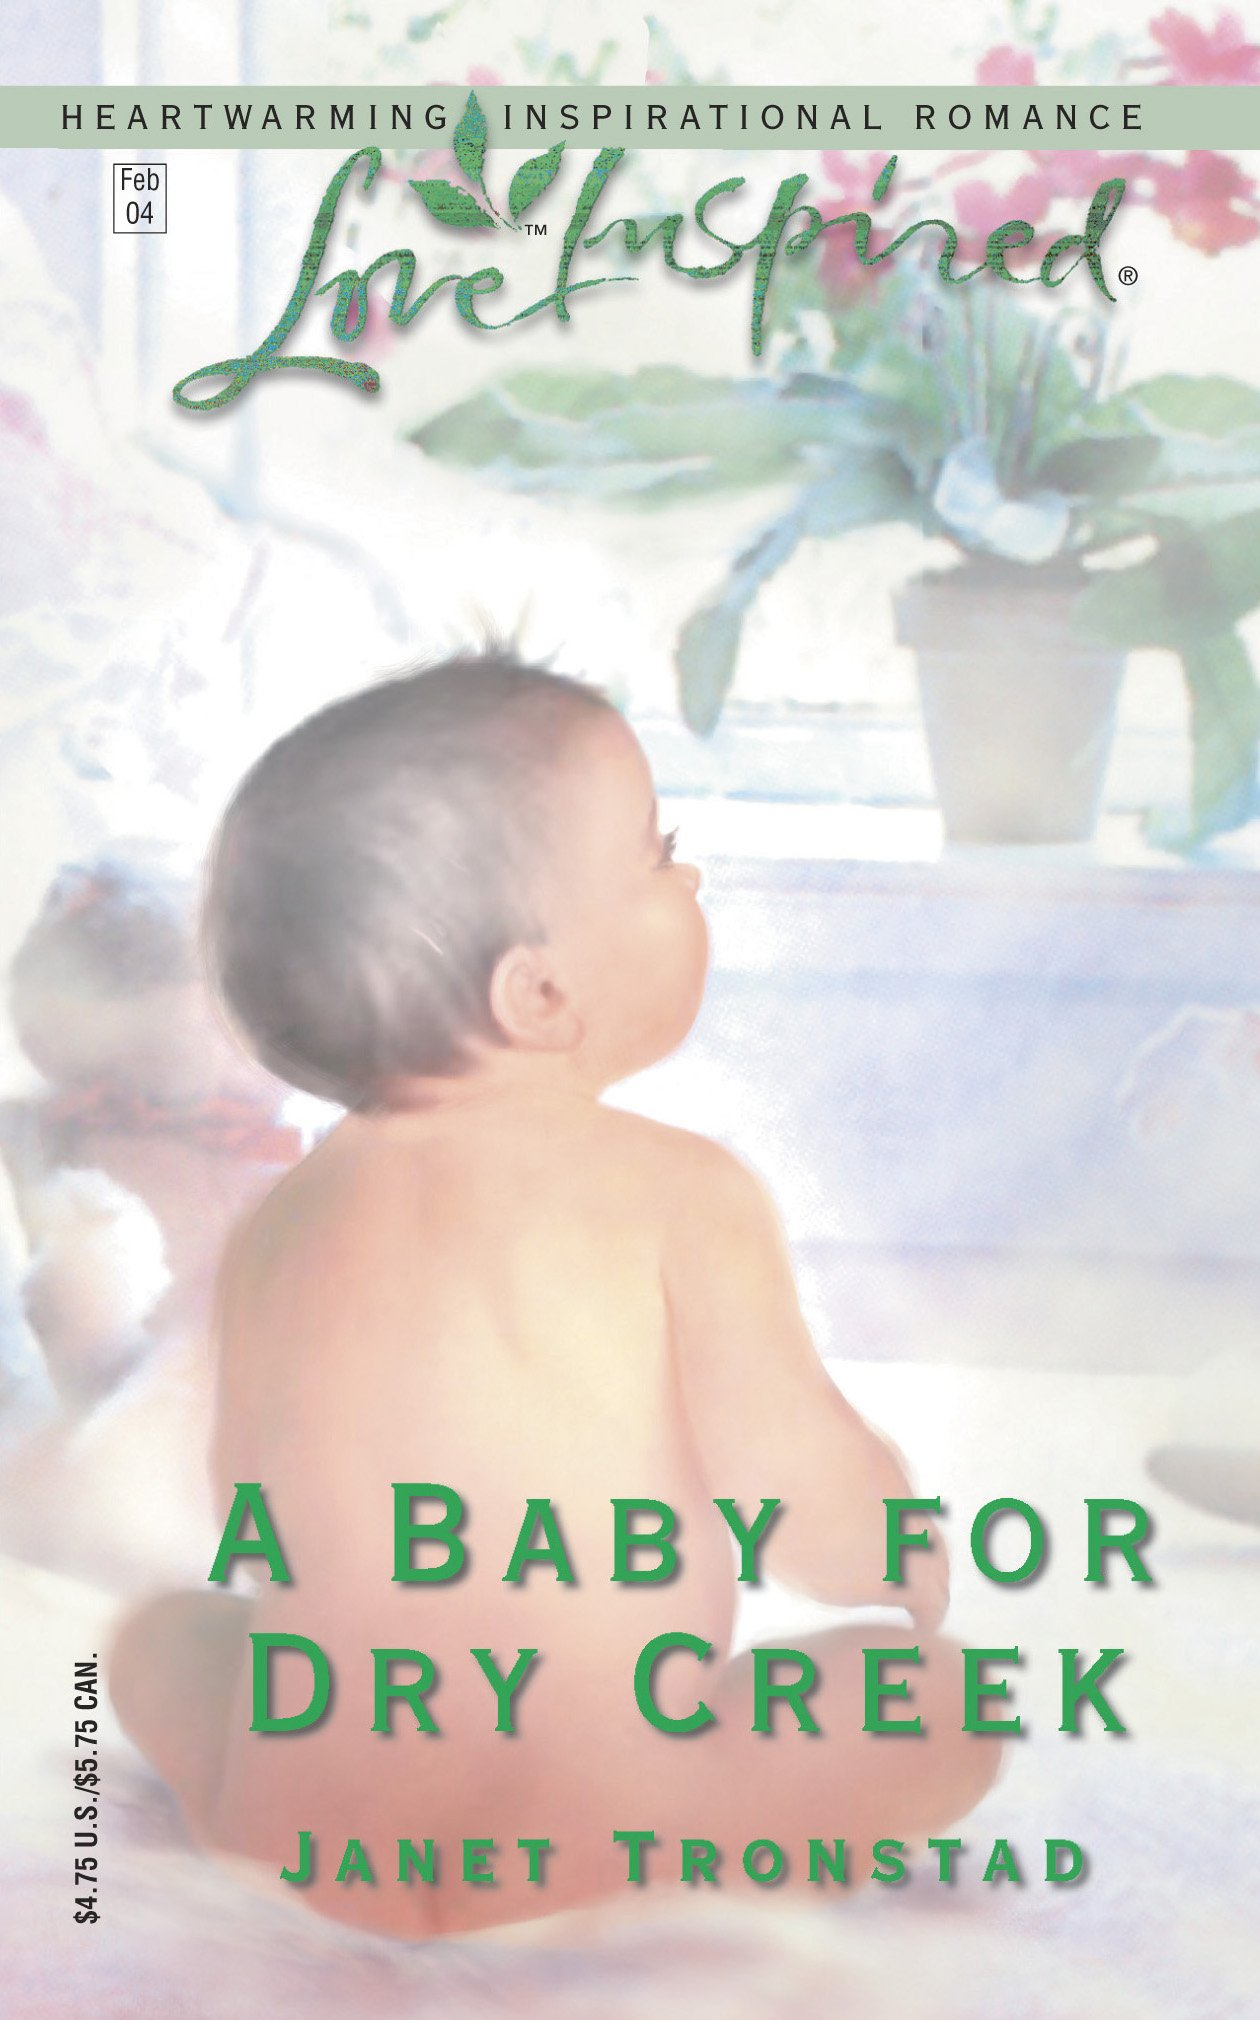 A Baby for Dry Creek (Dry Creek Series #6) (Love Inspired #240) ebook